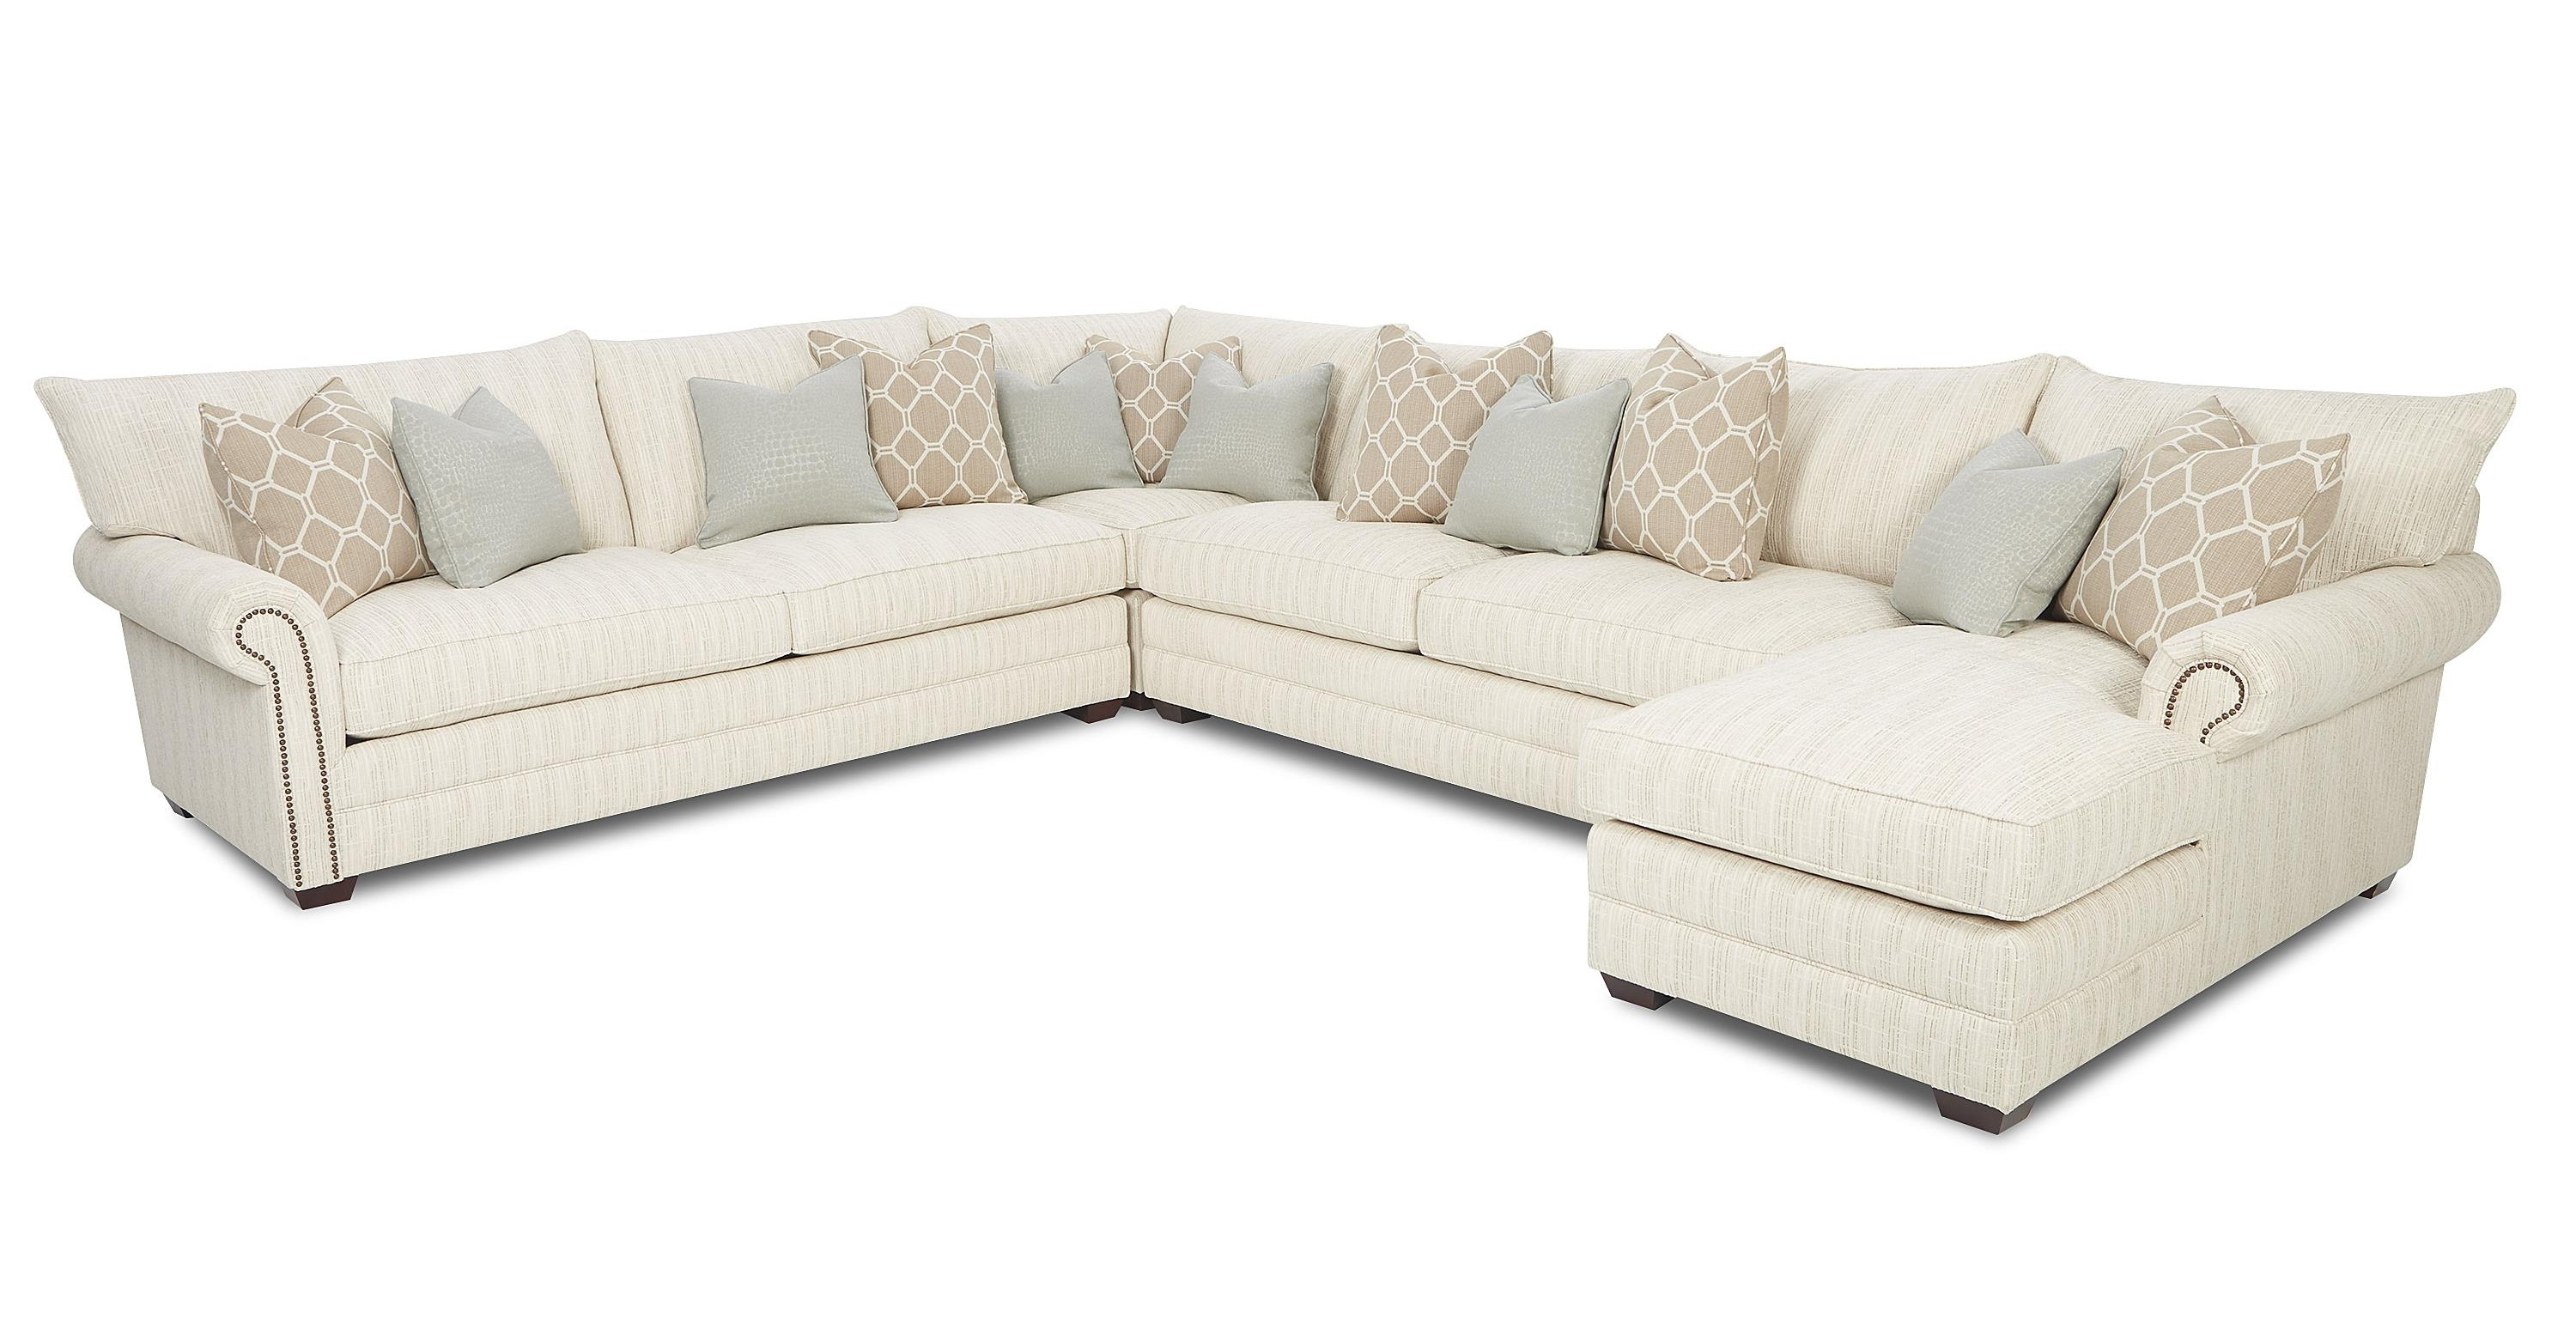 Sectionals With Chaise Lounge In Widely Used Traditional Sectional Sofa With Nailhead Trim And Chaise Lounge (View 9 of 15)